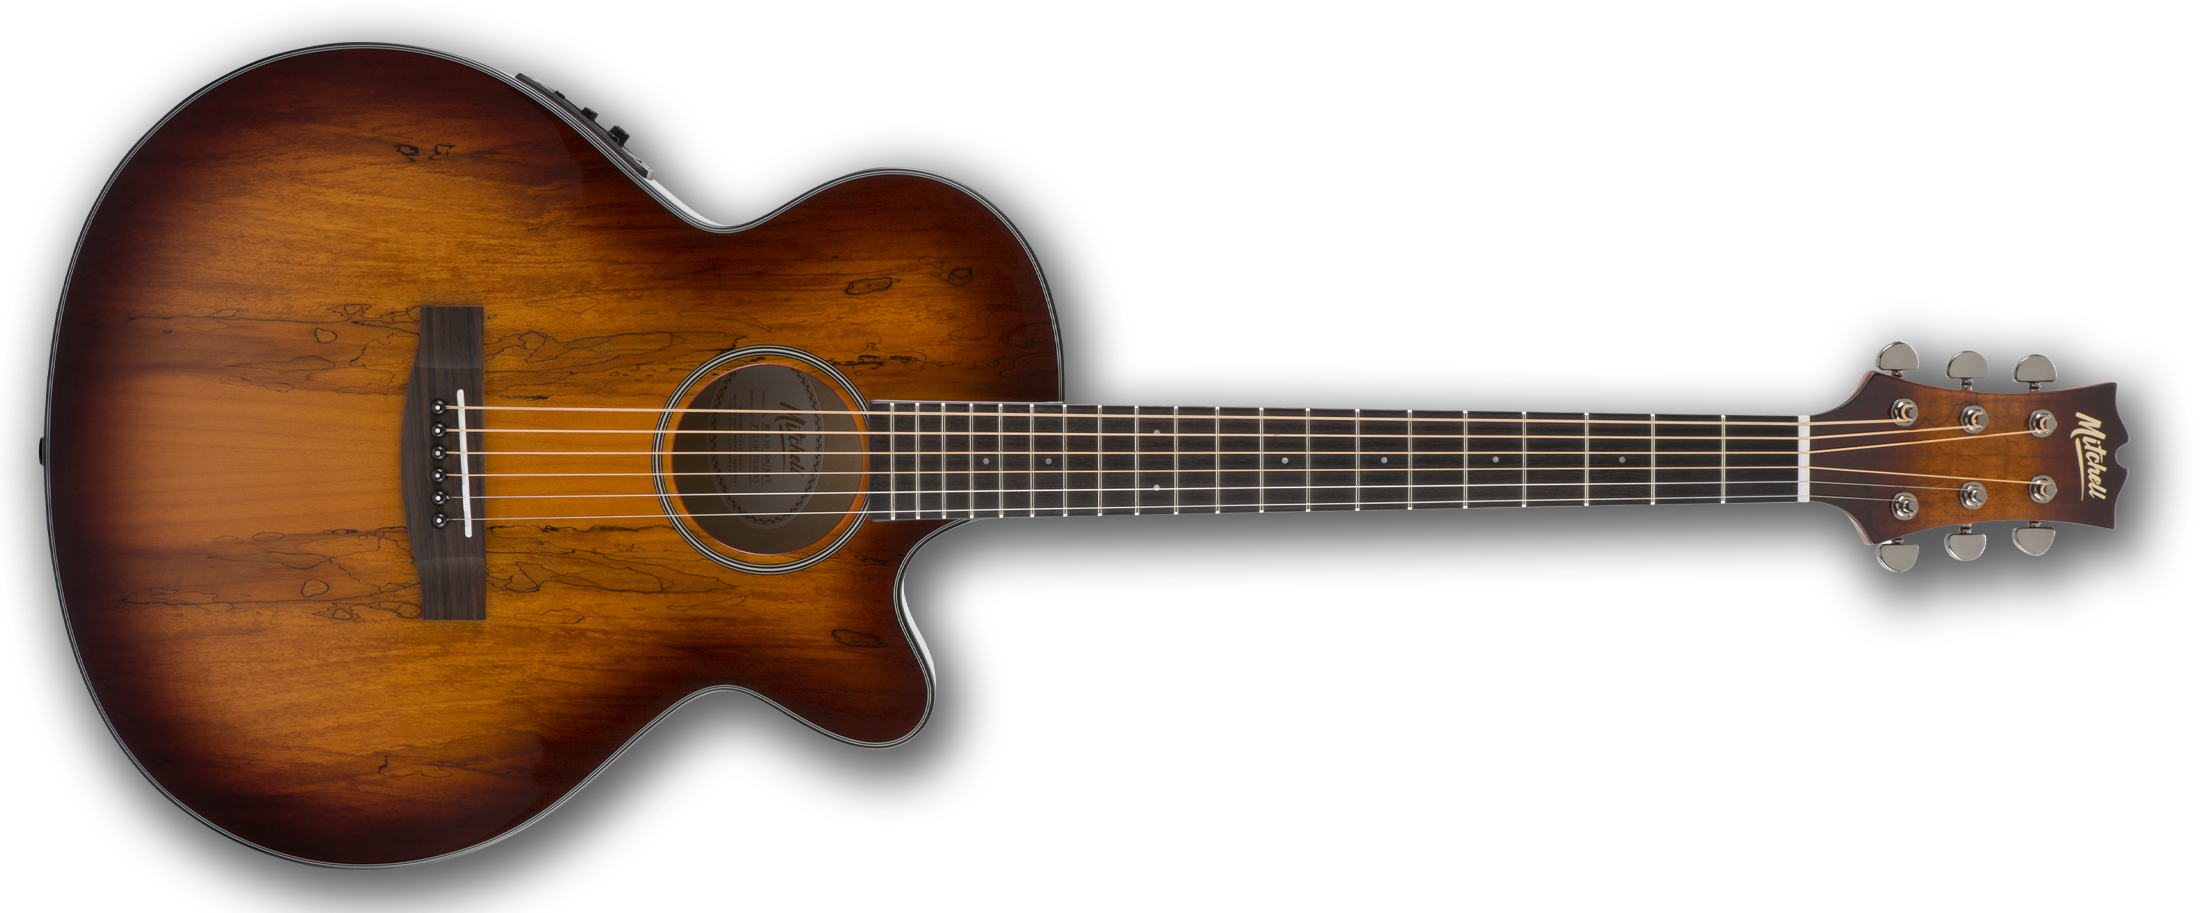 Mitchell MX430SM Grand Auditorium Acoustic-Electric Guitar in Spalted Maple